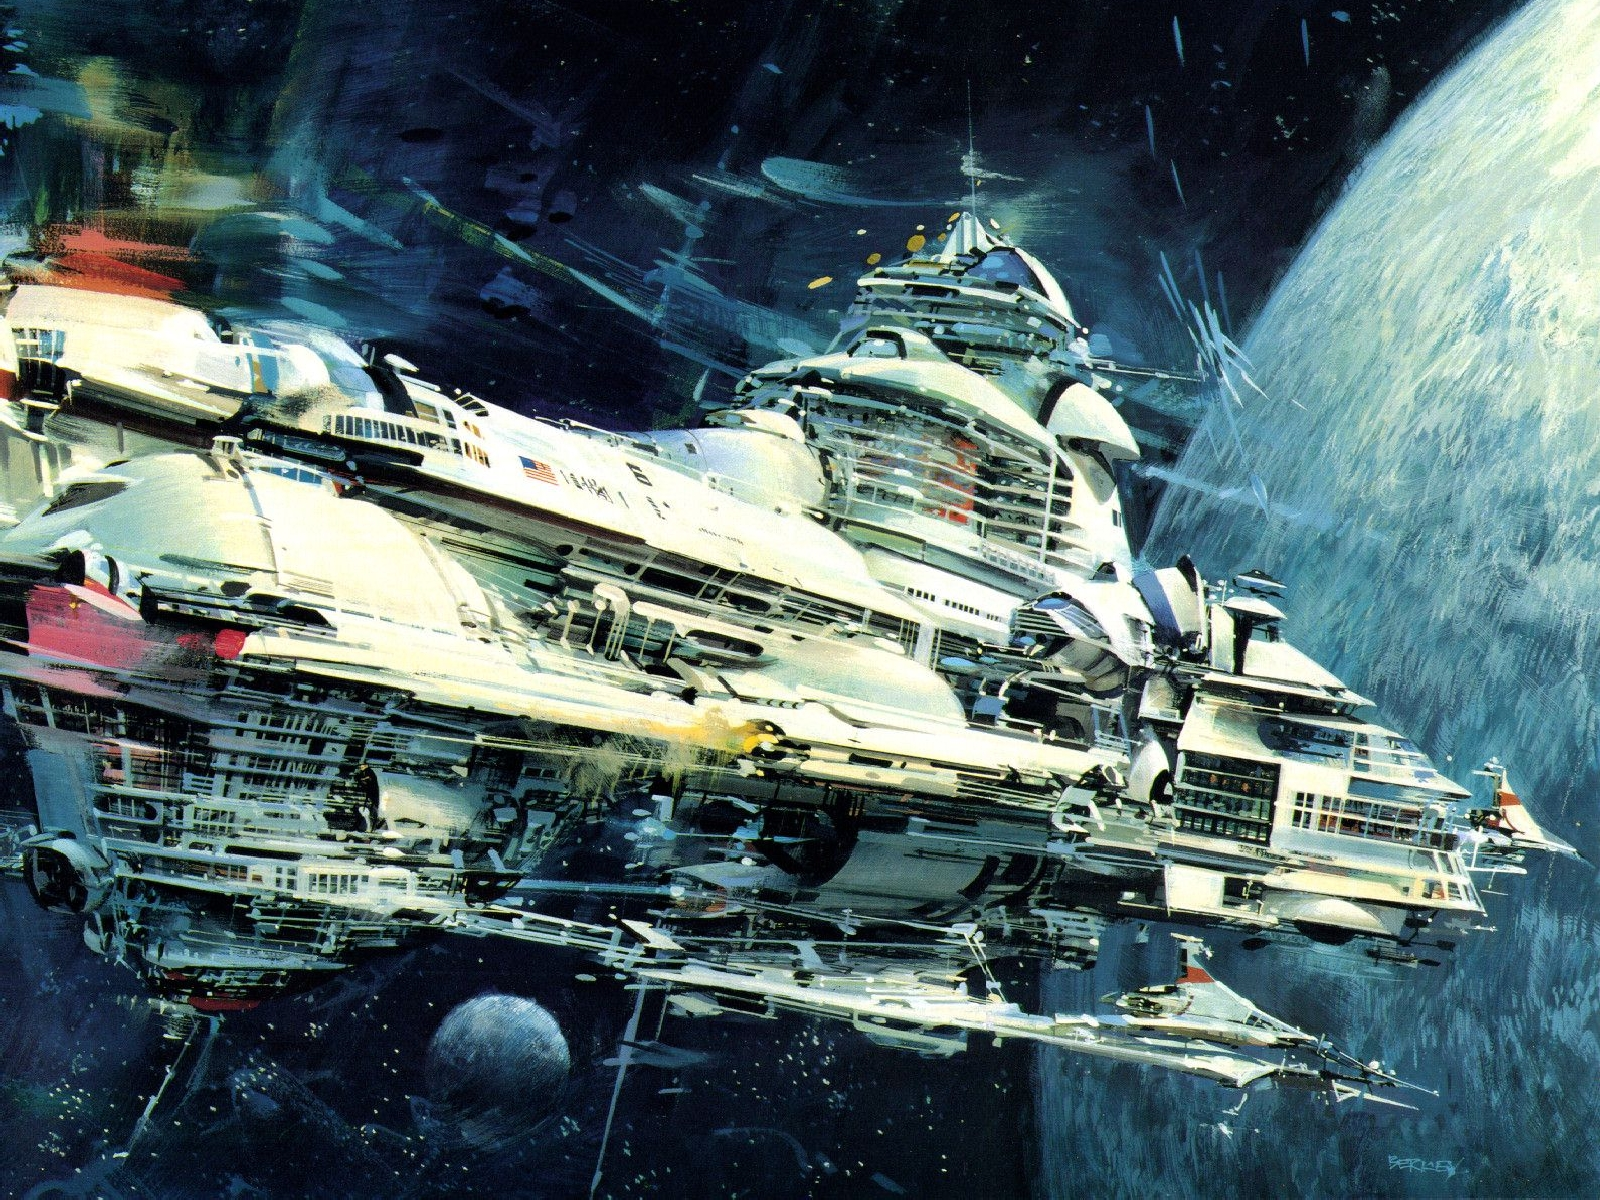 Cool-Space Ship Colony - Pics about space